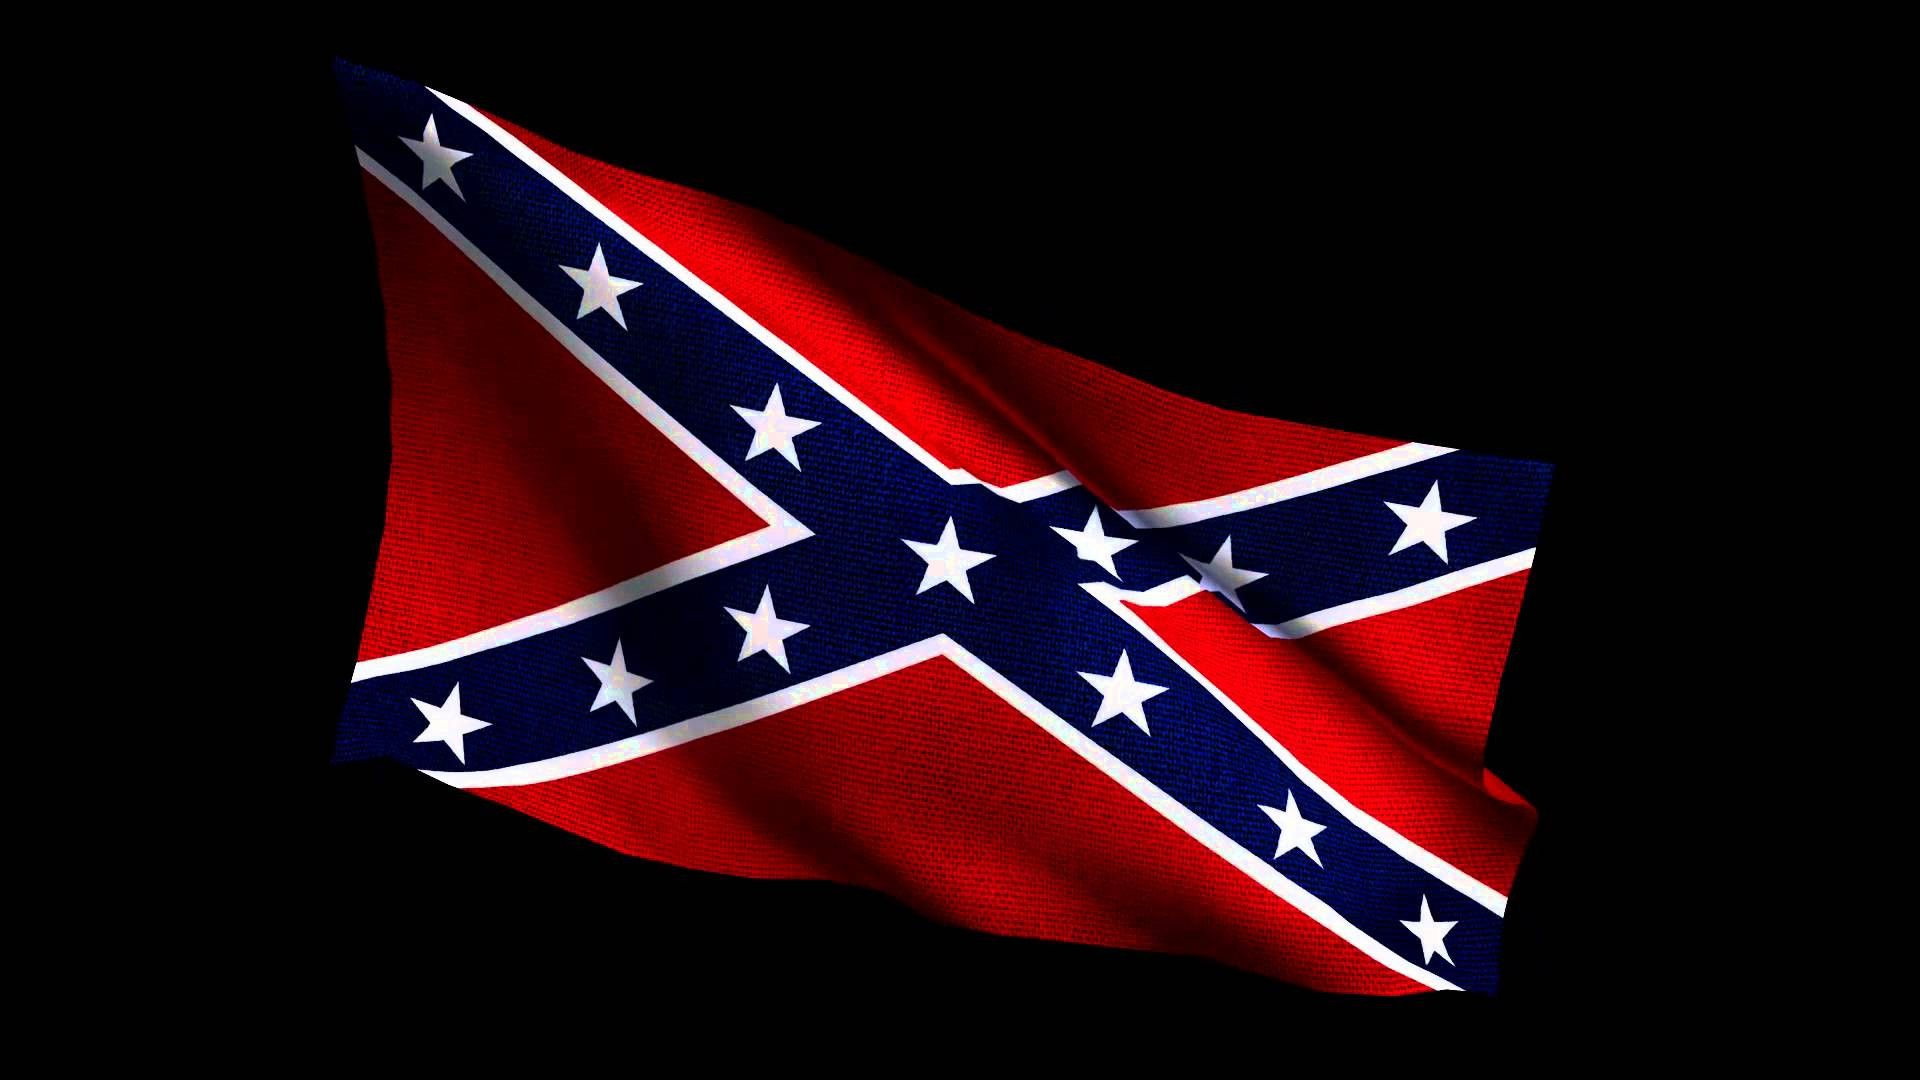 Confederate Flag wallpaper ·① Download free awesome HD ...